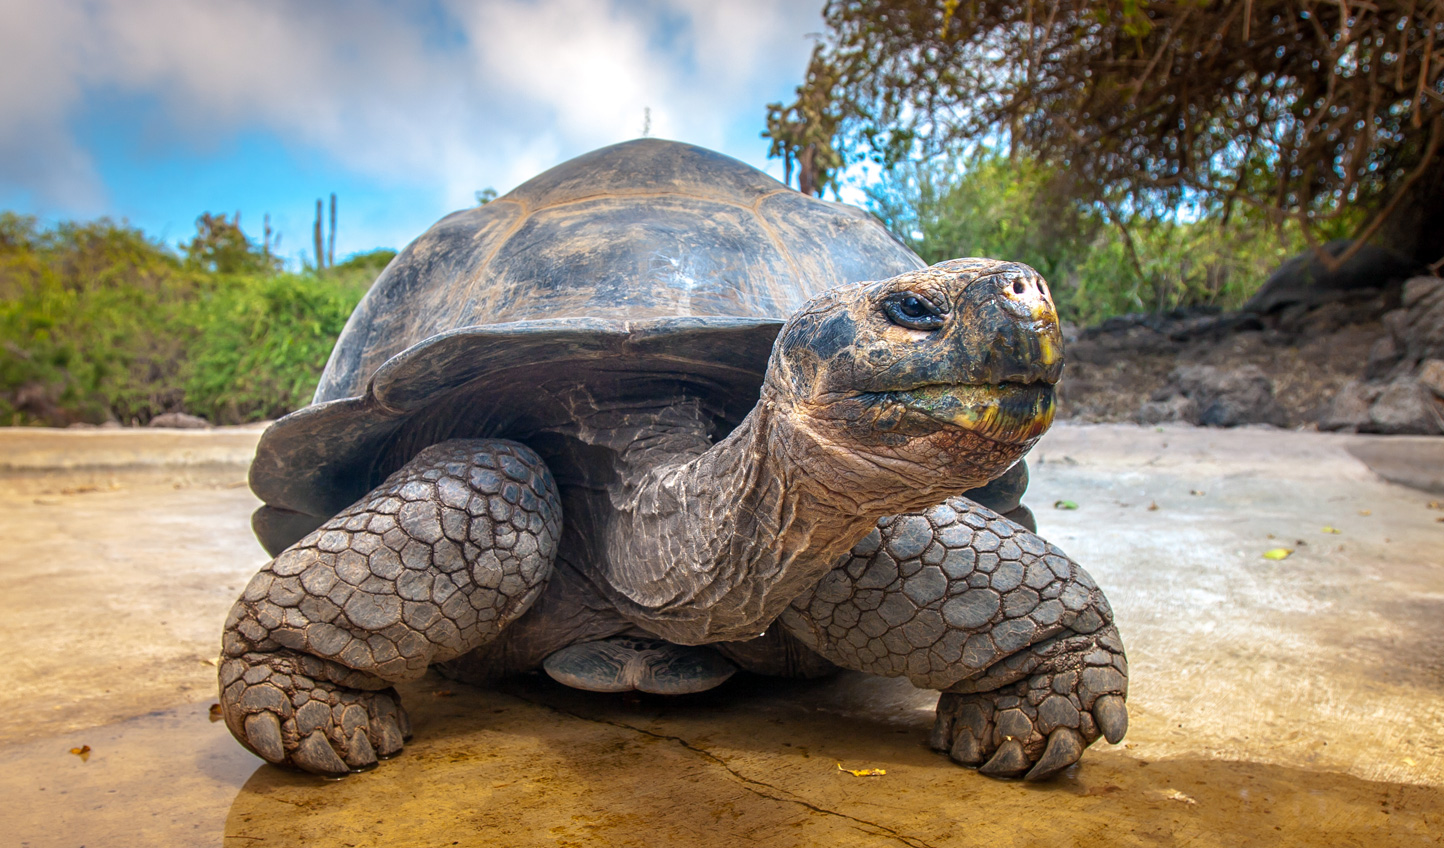 Spot giant tortoises in The Galápagos